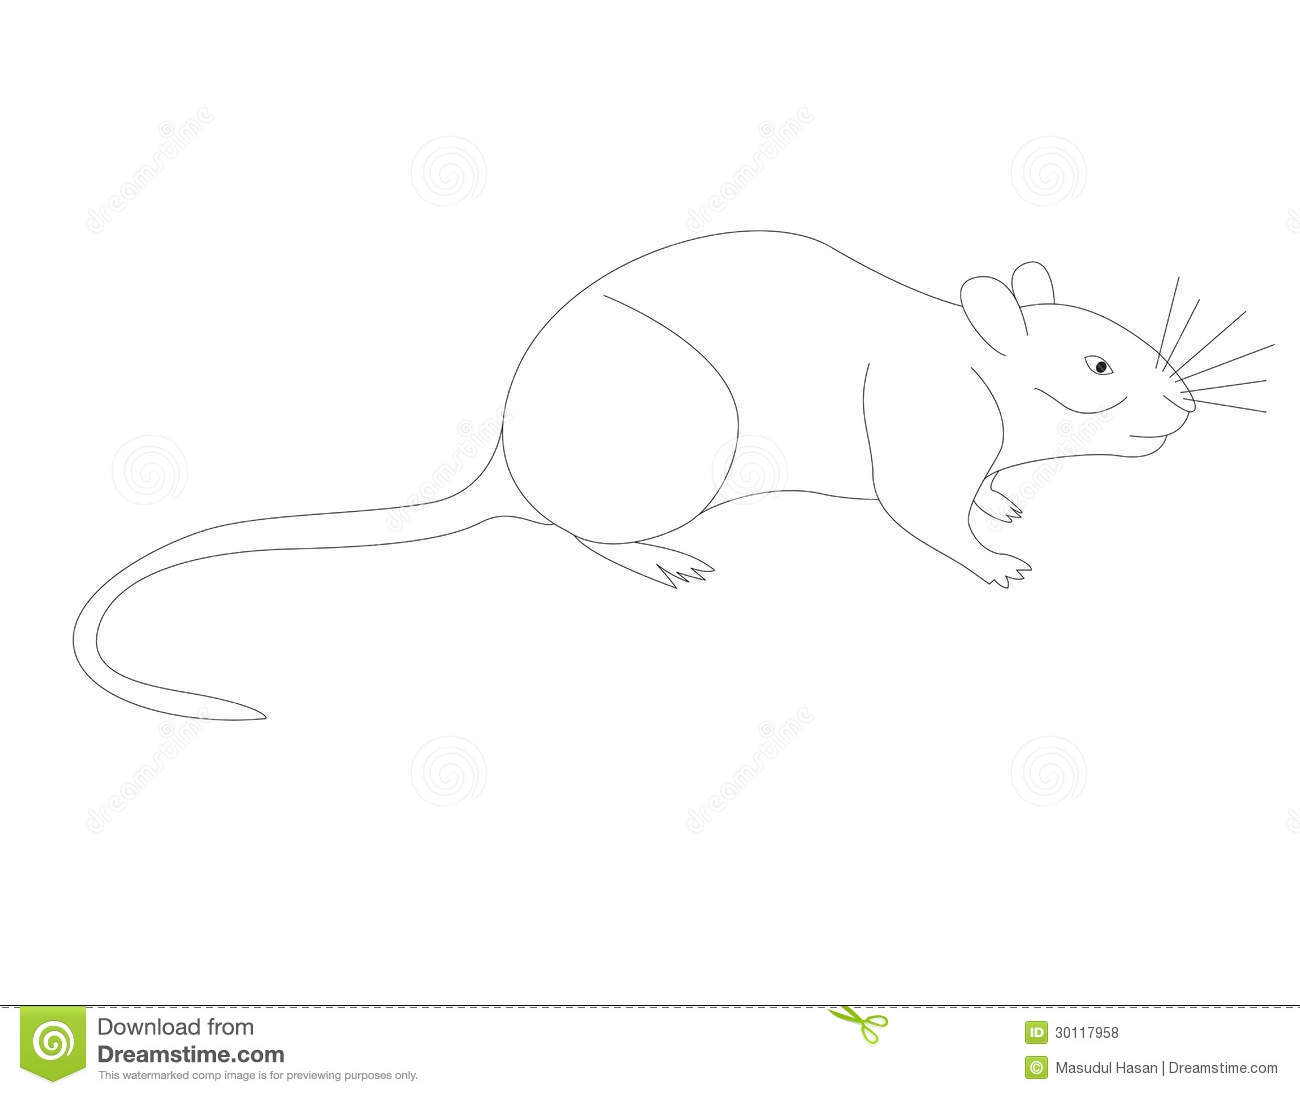 Vole coloring, Download Vole coloring